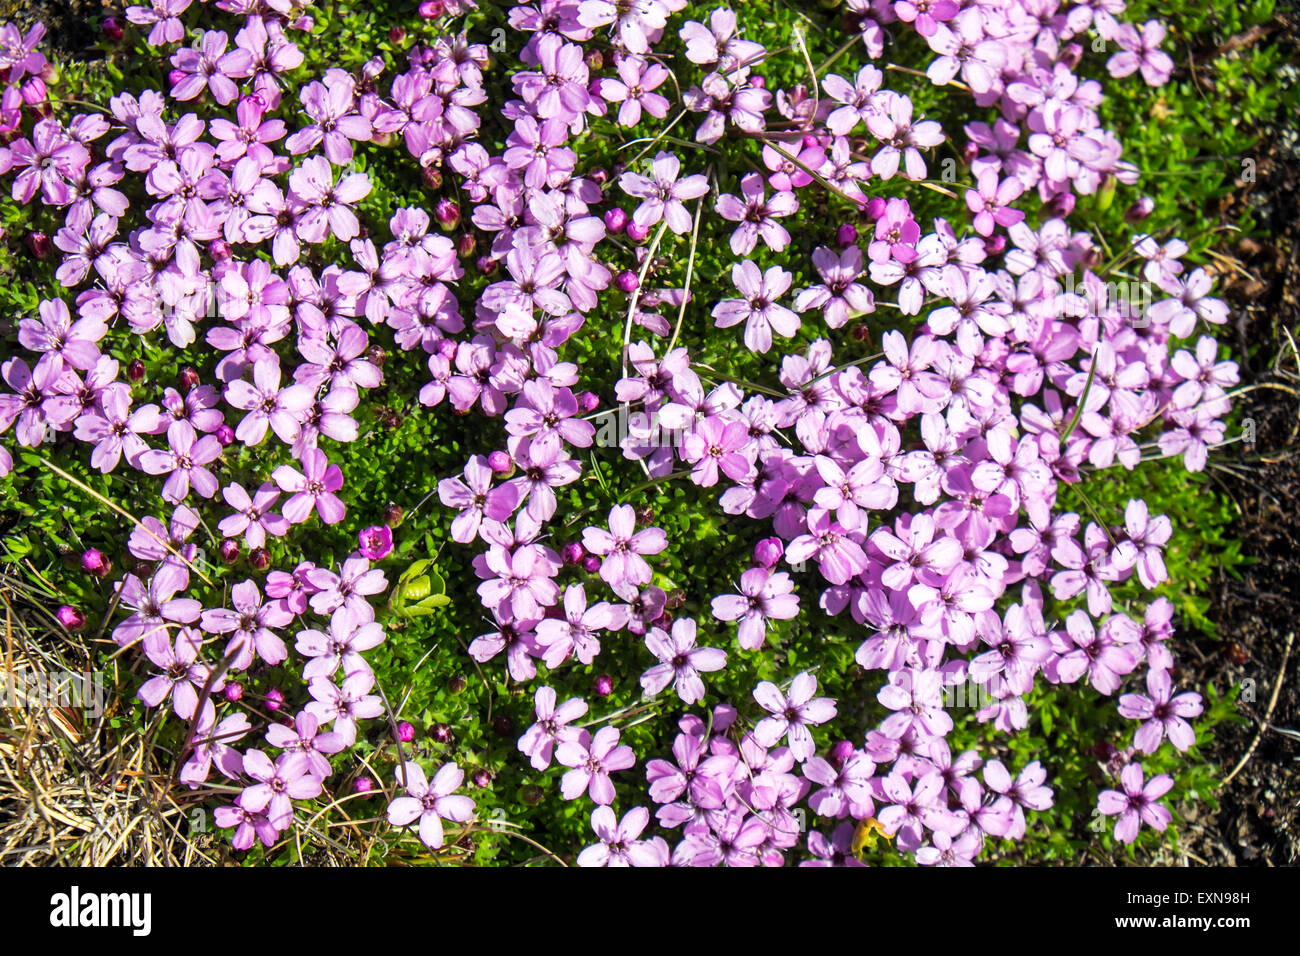 Pink arctic flowers stock photos pink arctic flowers stock images pink moss campion flowers seen in iceland stock image mightylinksfo